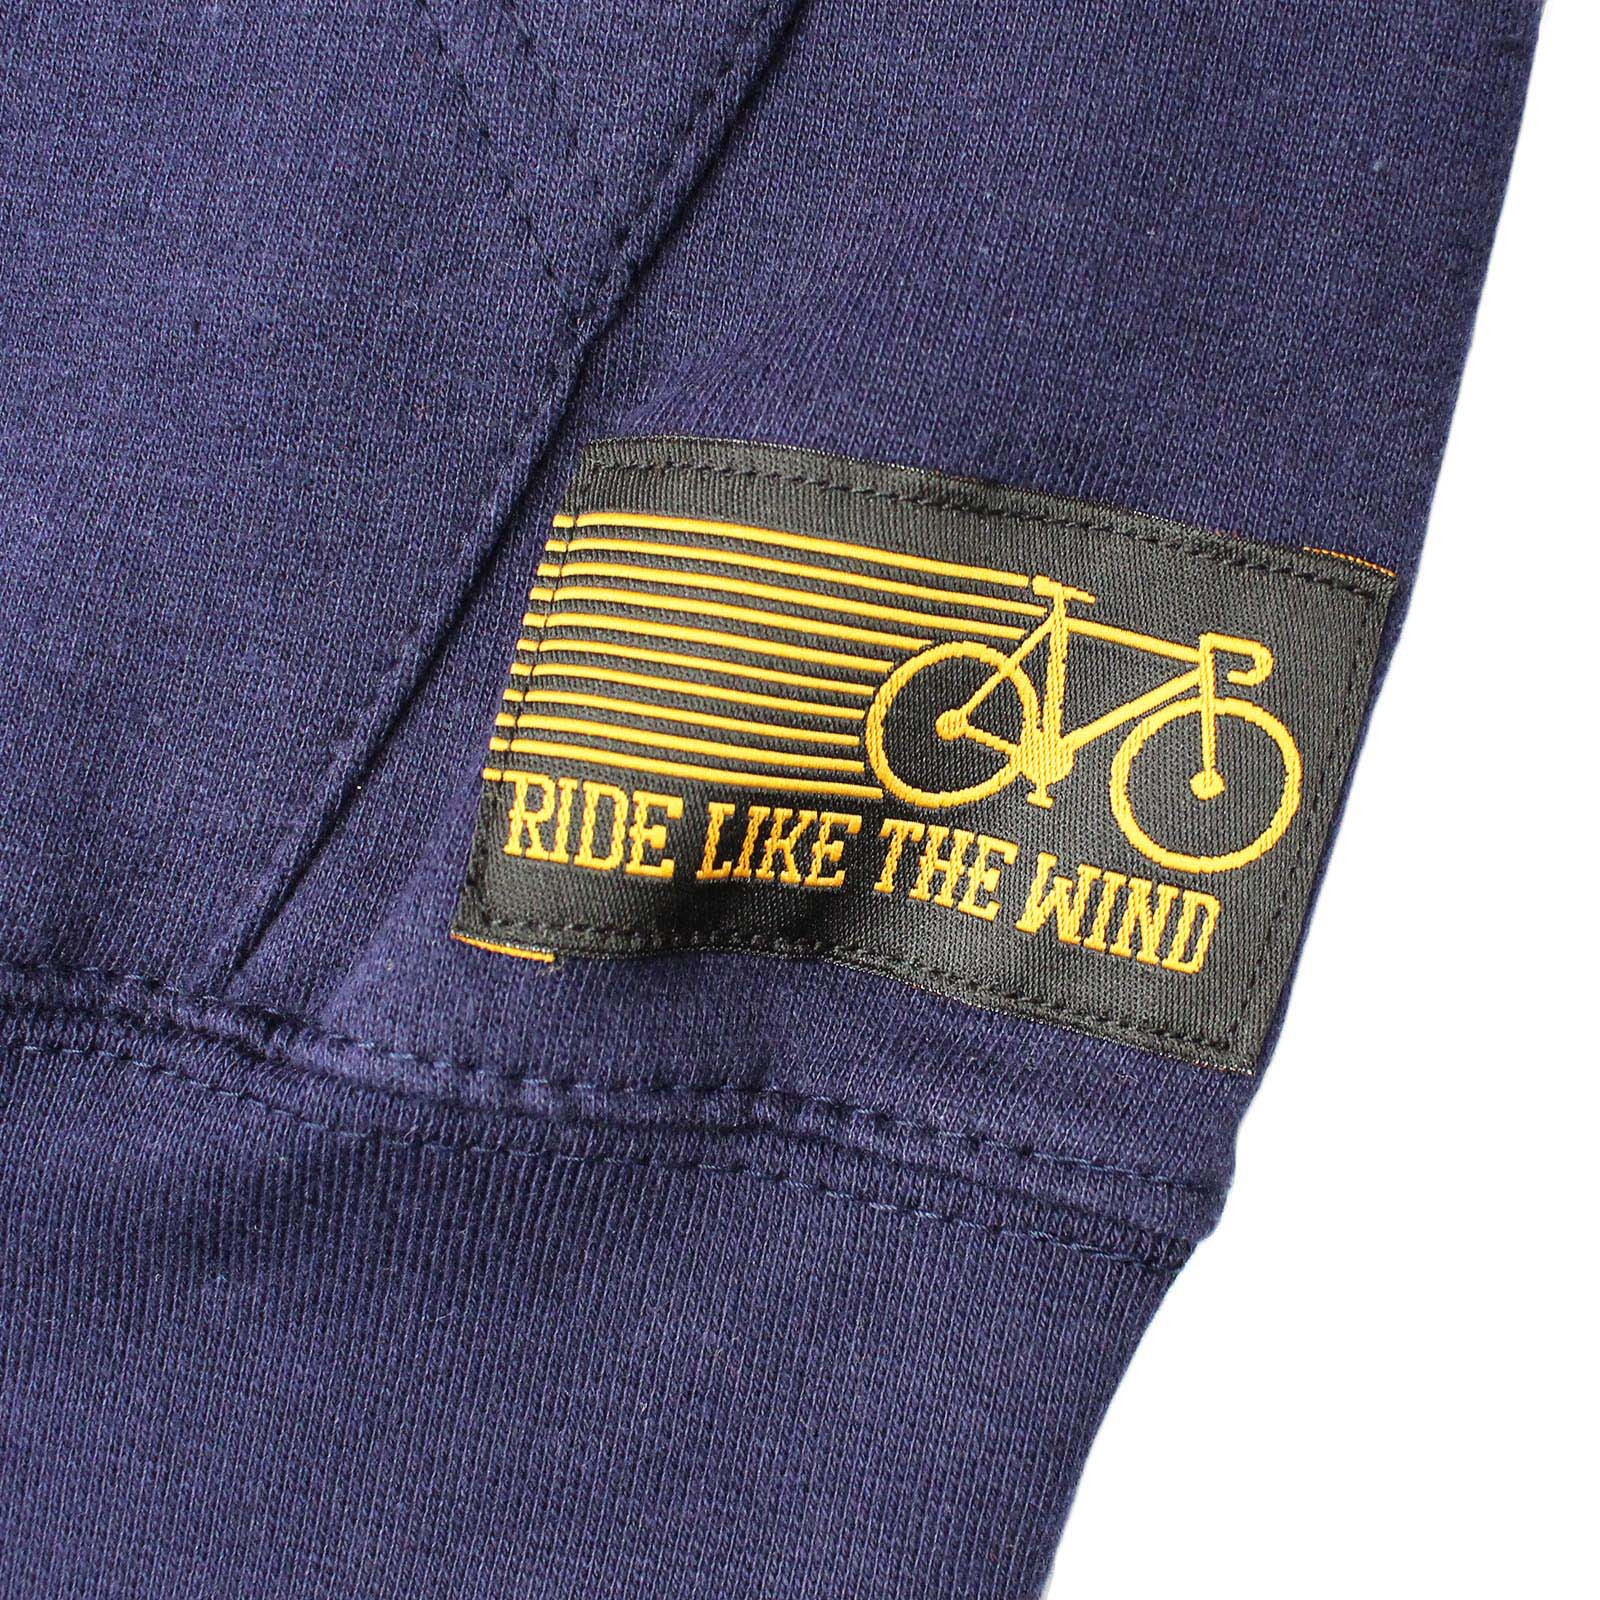 Cycling-Hoodie-A-Good-Ride-Fixes-Everything-hoody-funny-Birthday-HOODY thumbnail 5